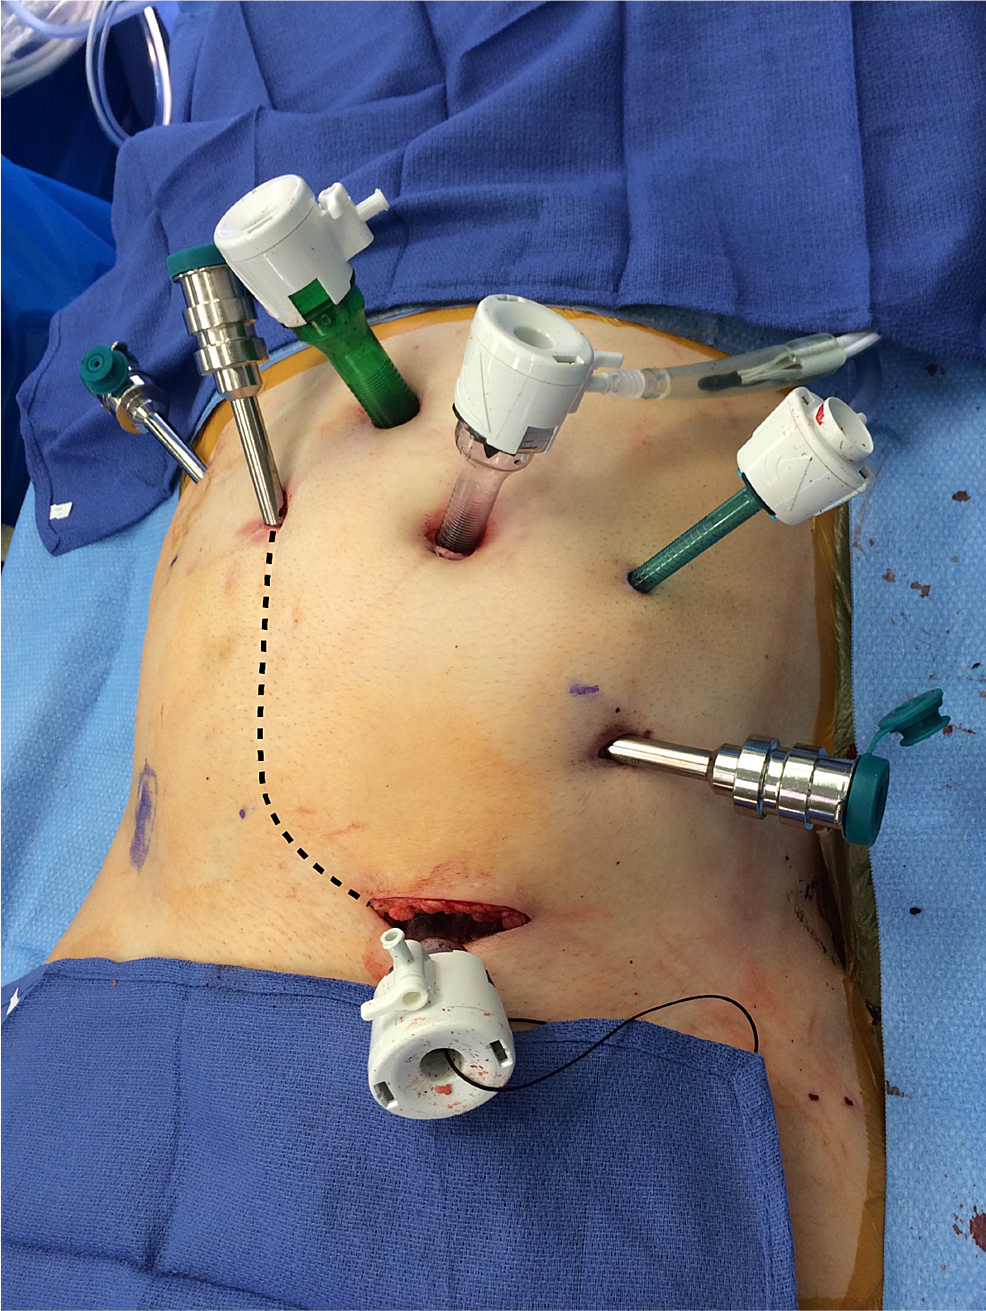 Specimen-extraction-site-at-the-lower-medial-aspect-of-the-patient's-prior-Gibson-scar